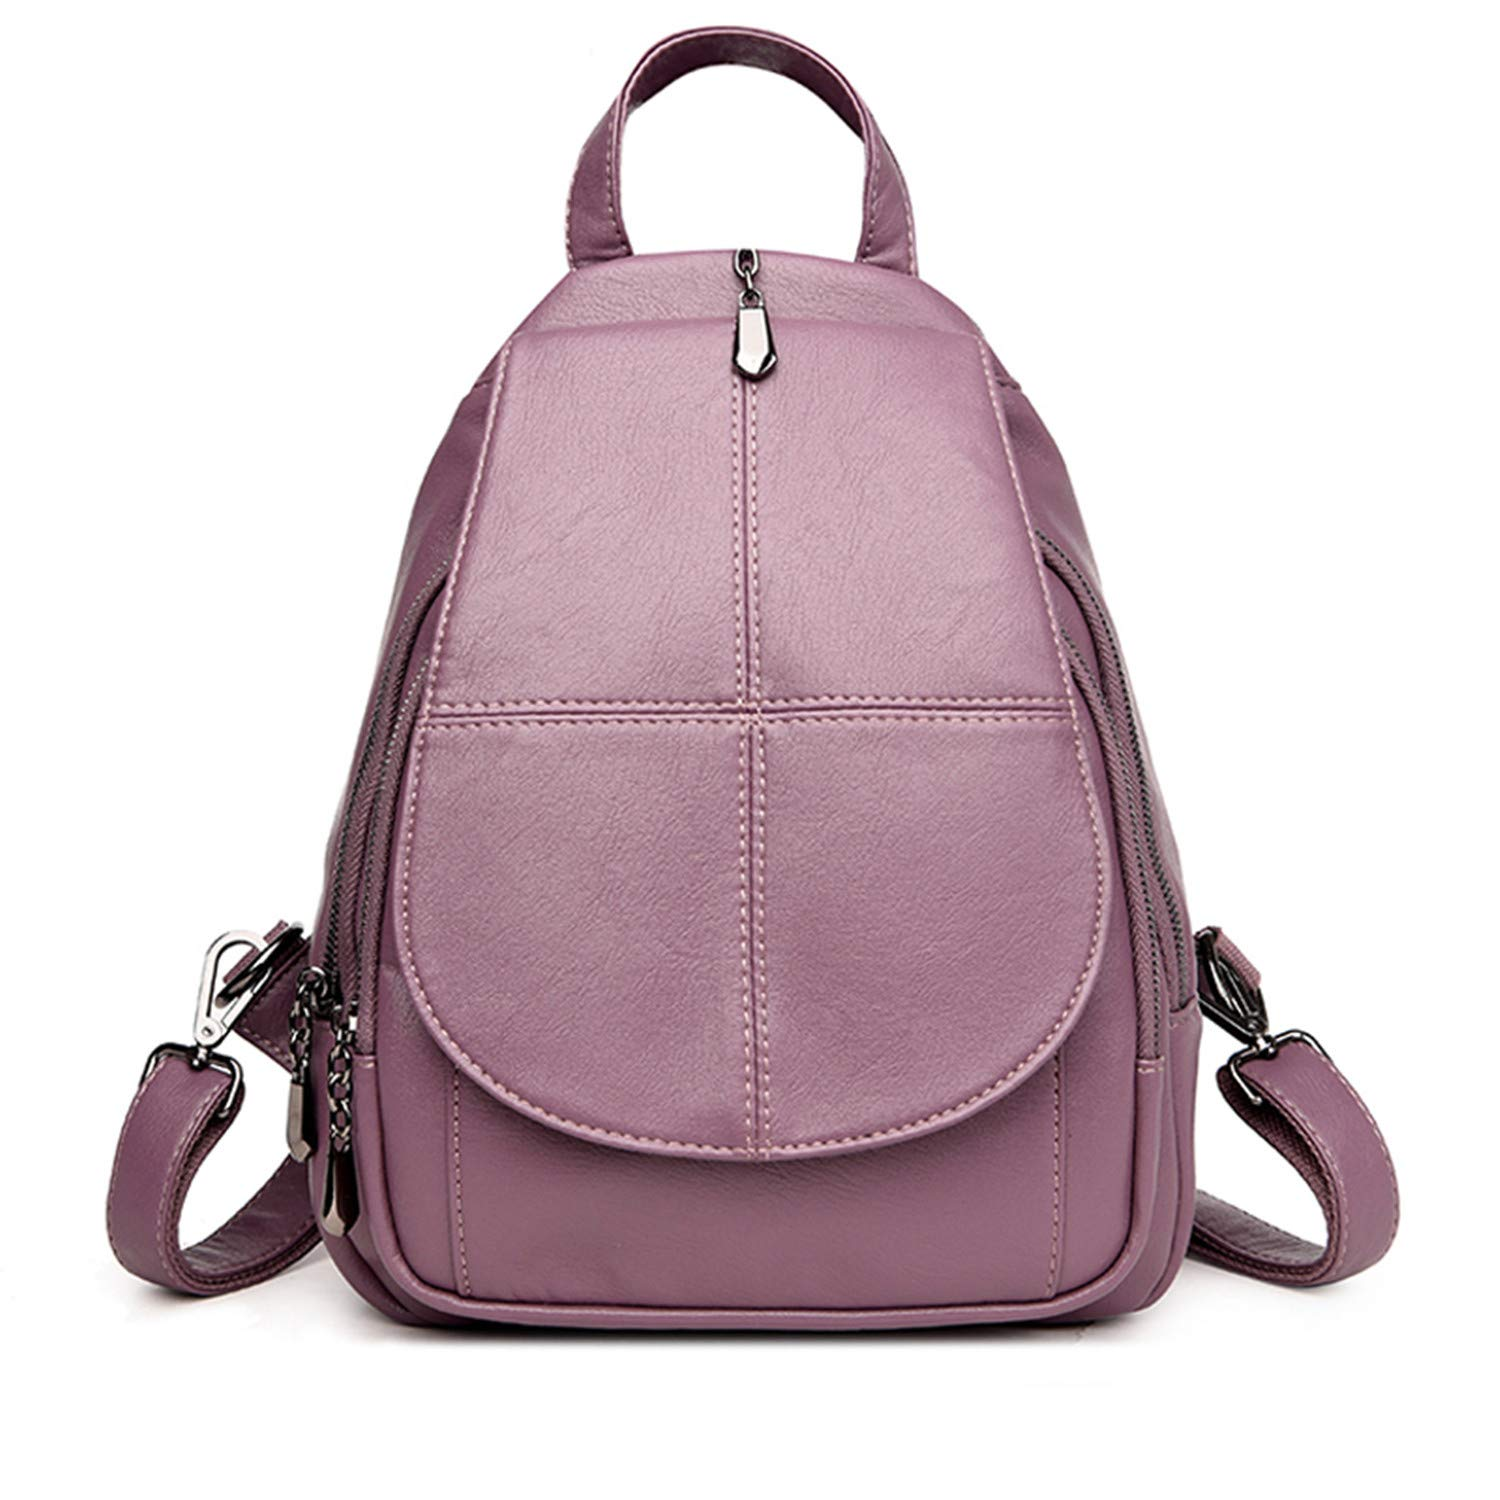 Amazon.com: Fashion Simple Backpack Female Soft Leather School Bags for Girls Luxury Brand Shoulder Bags for Women Mochila Purple 13 Inches: Computers & ...